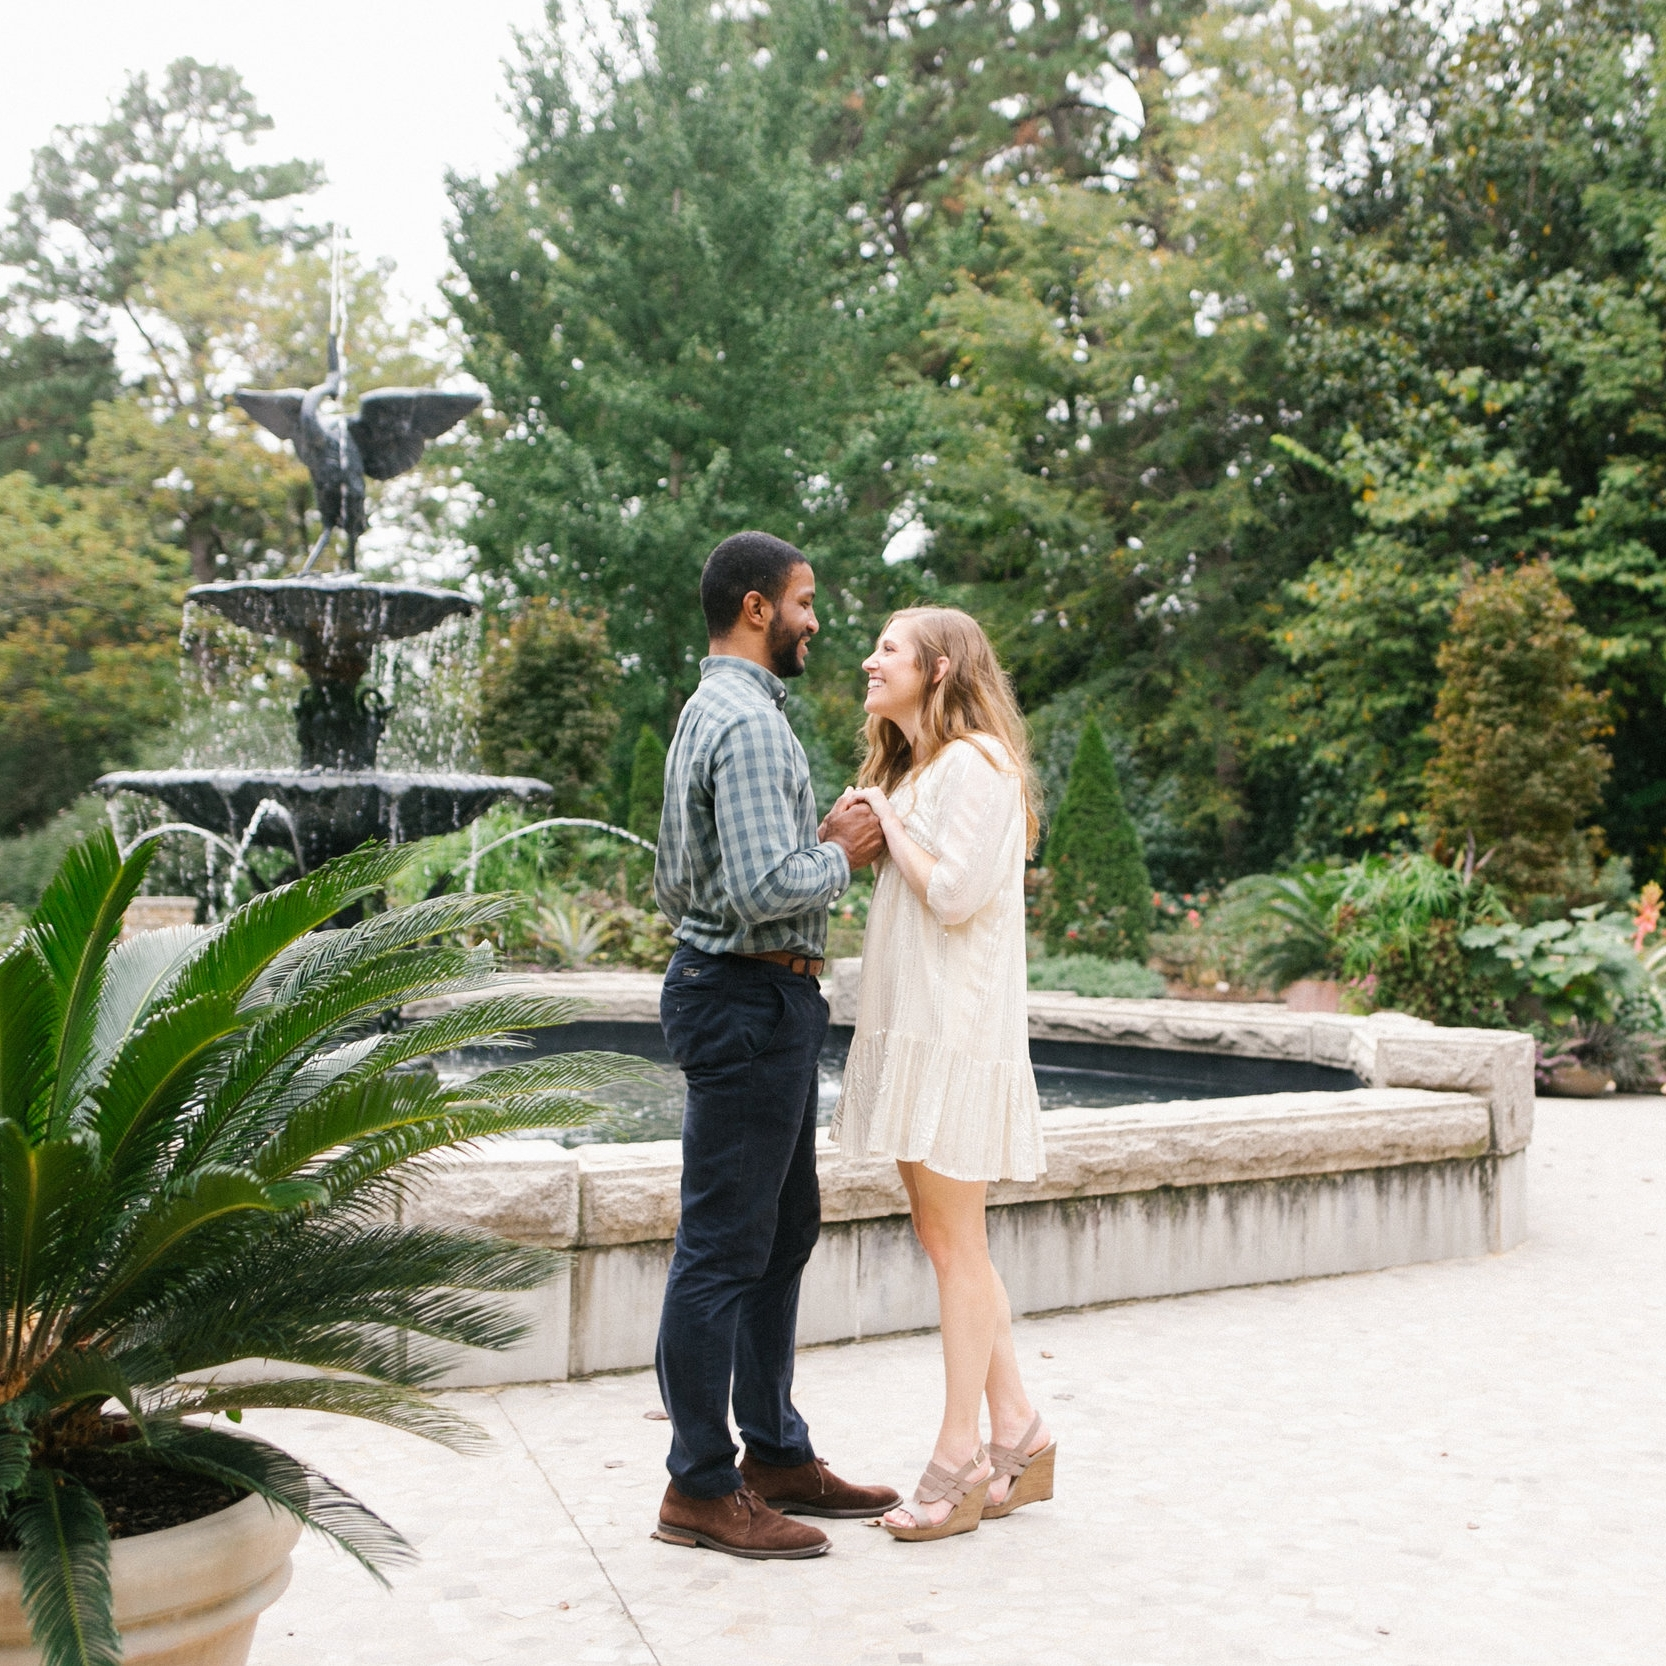 duke_gardens_engagement_session.jpg